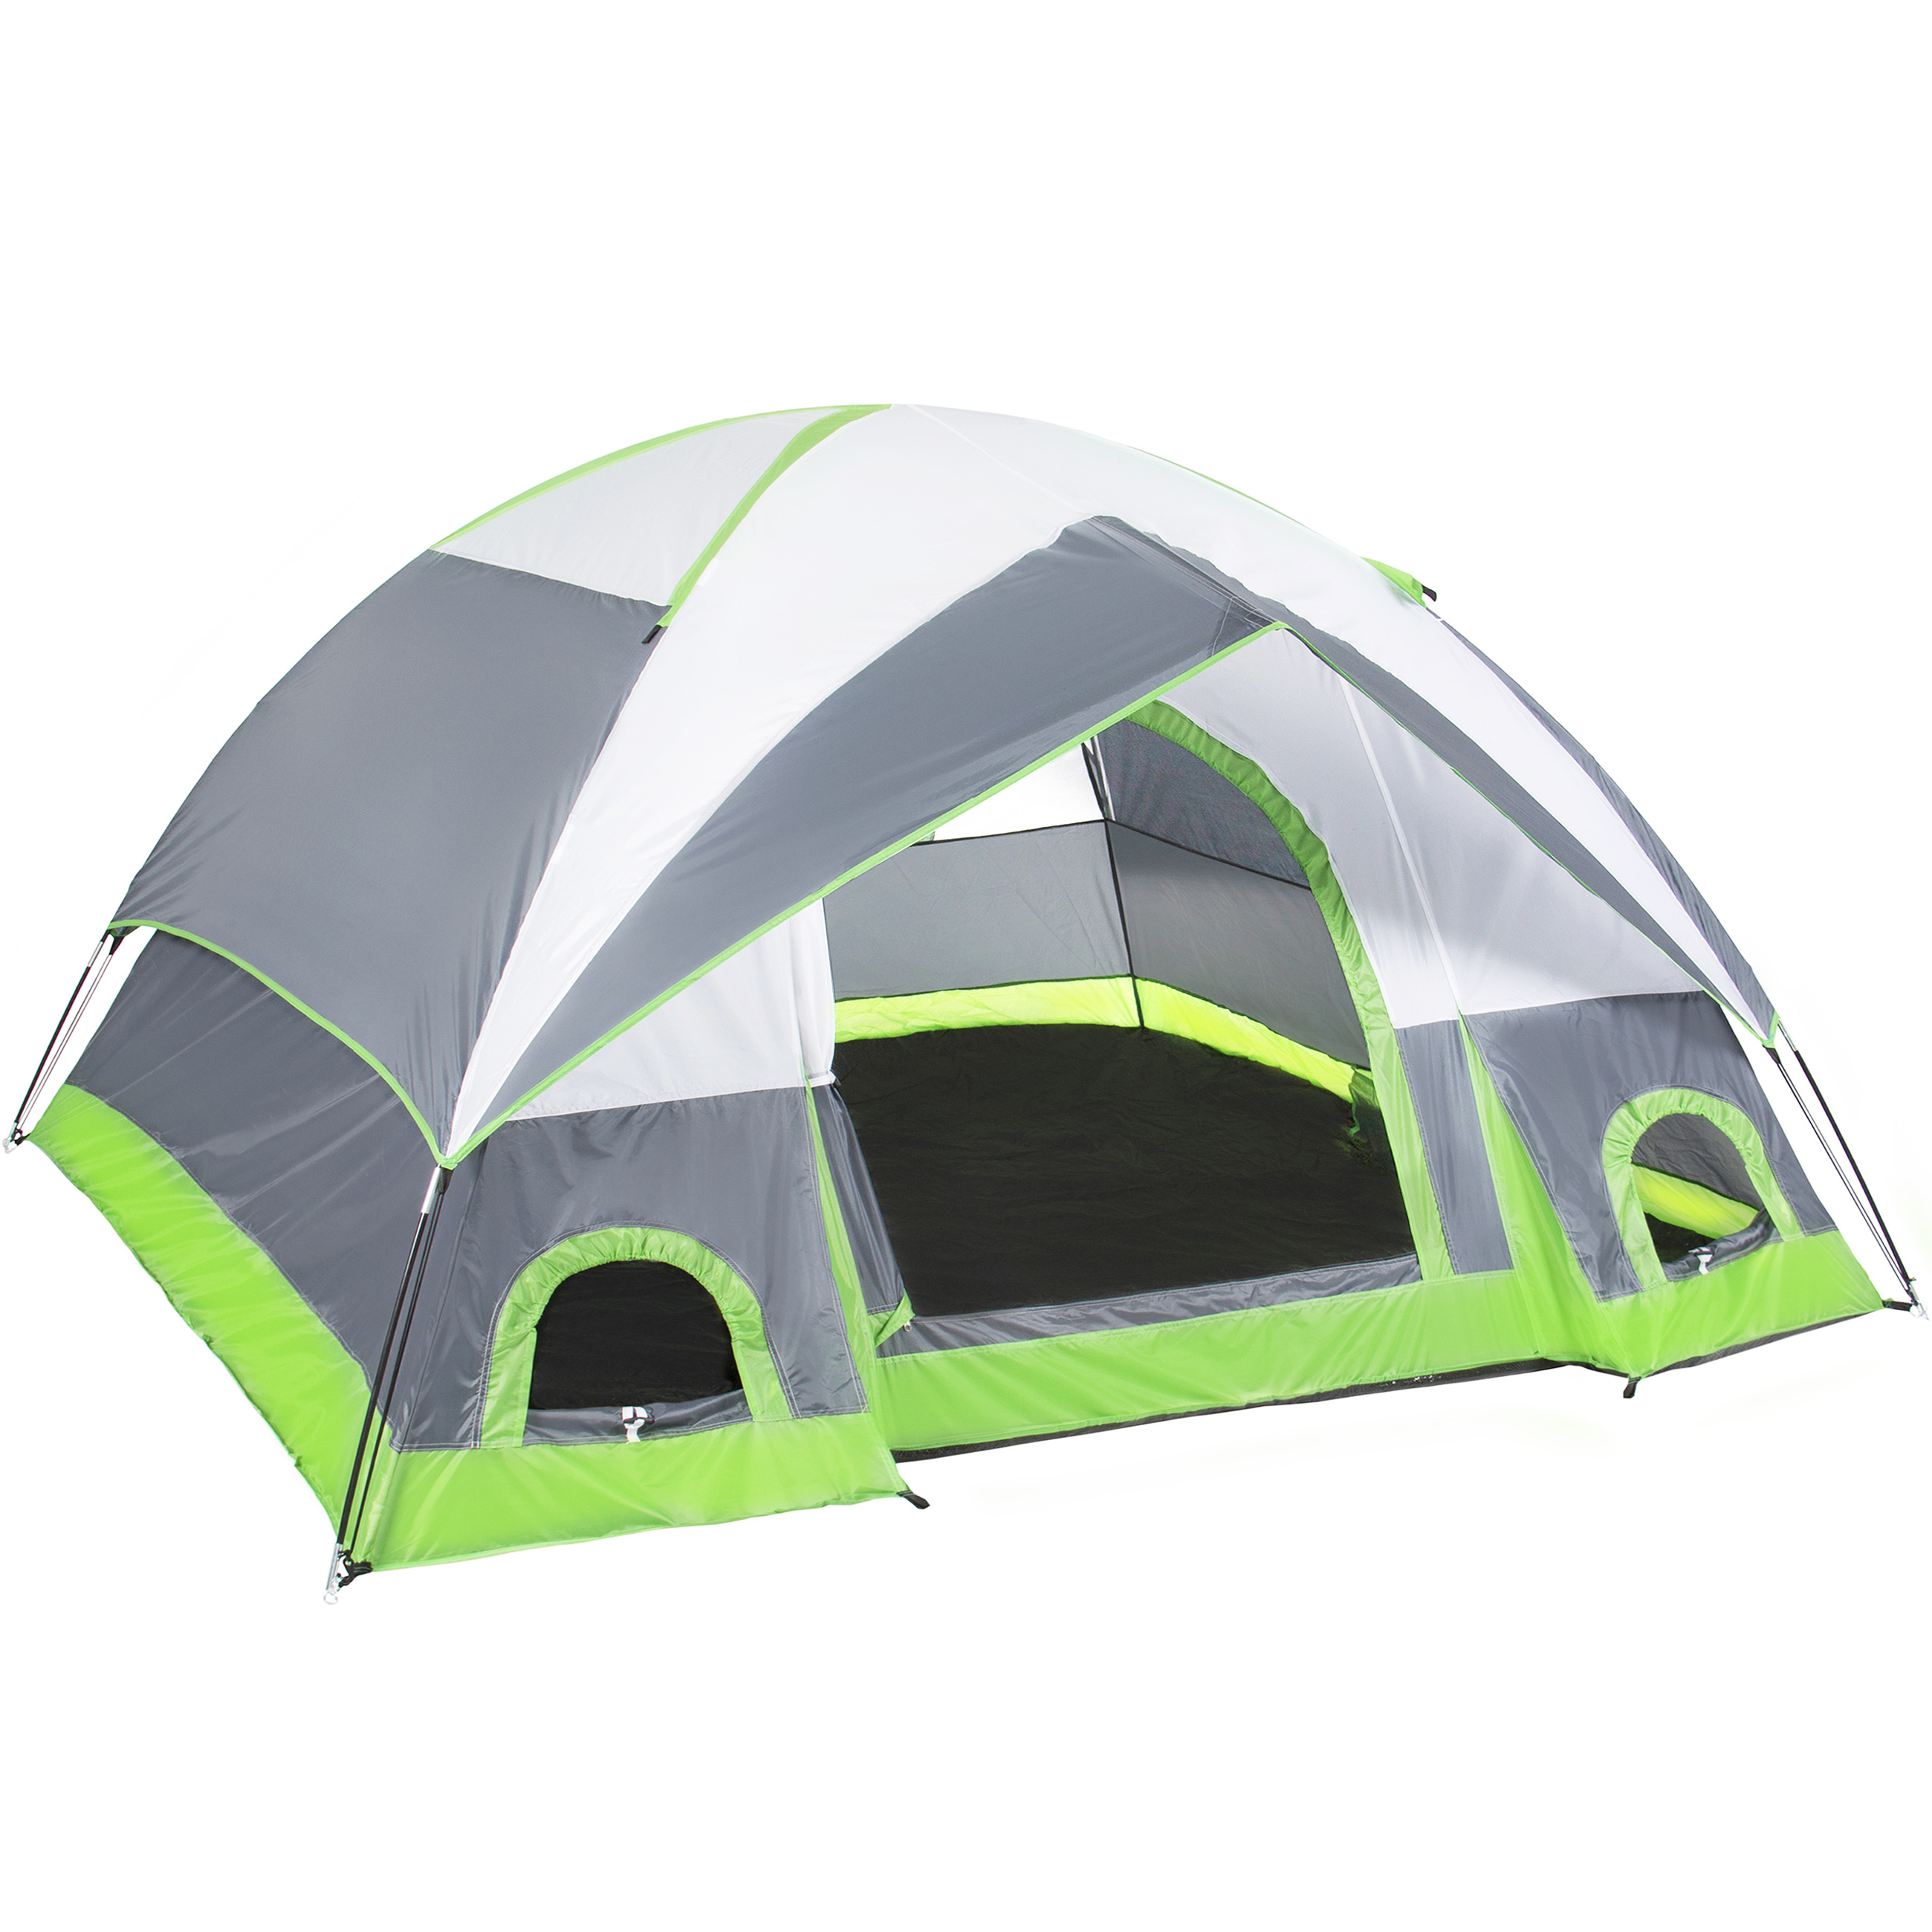 Best Choice Products 4 Person C&ing Tent Family Outdoor Sleeping Dome Water Resistant W/ Carry  sc 1 st  Walmart & Tent Bundles